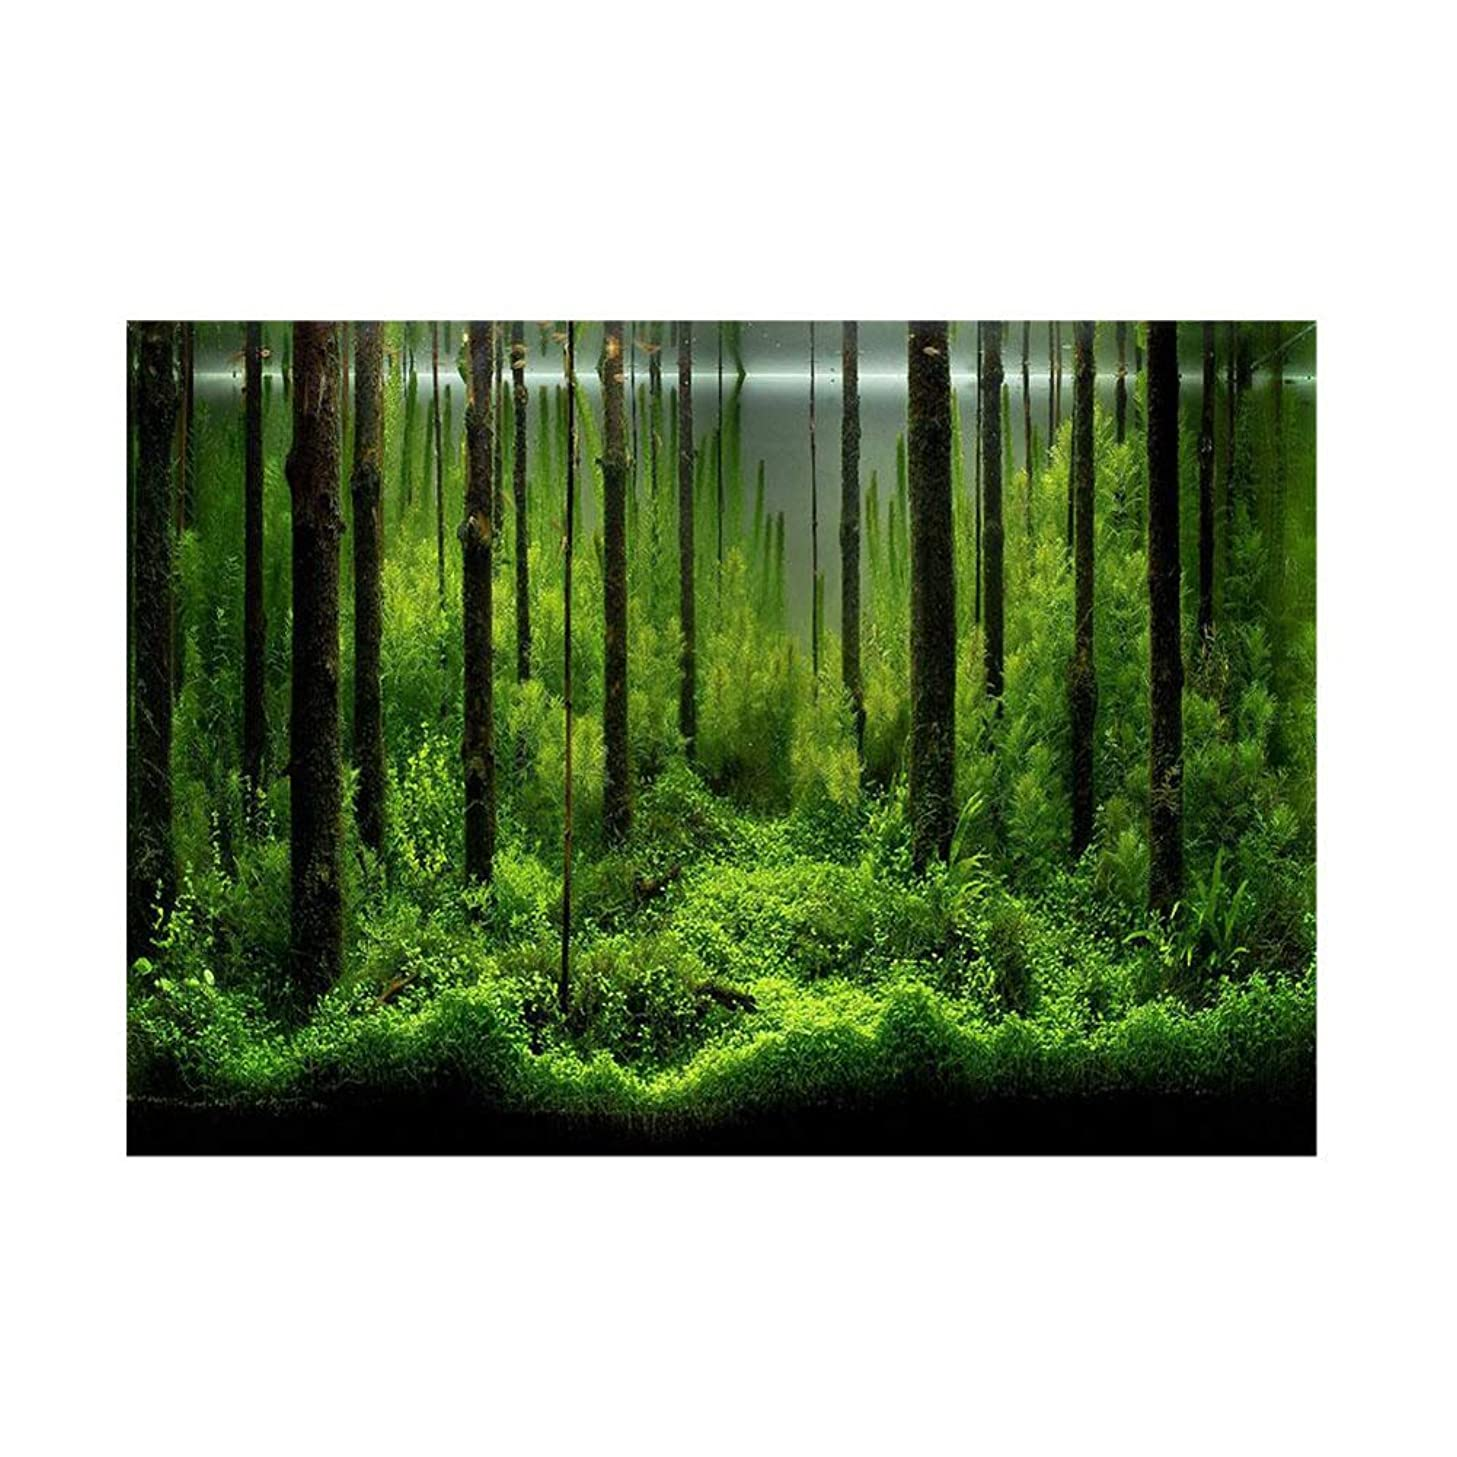 PVC Fish Tank Background Adhesive Underwater Forest Tank Background Poster Backdrop Decoration Paper (9150cm)